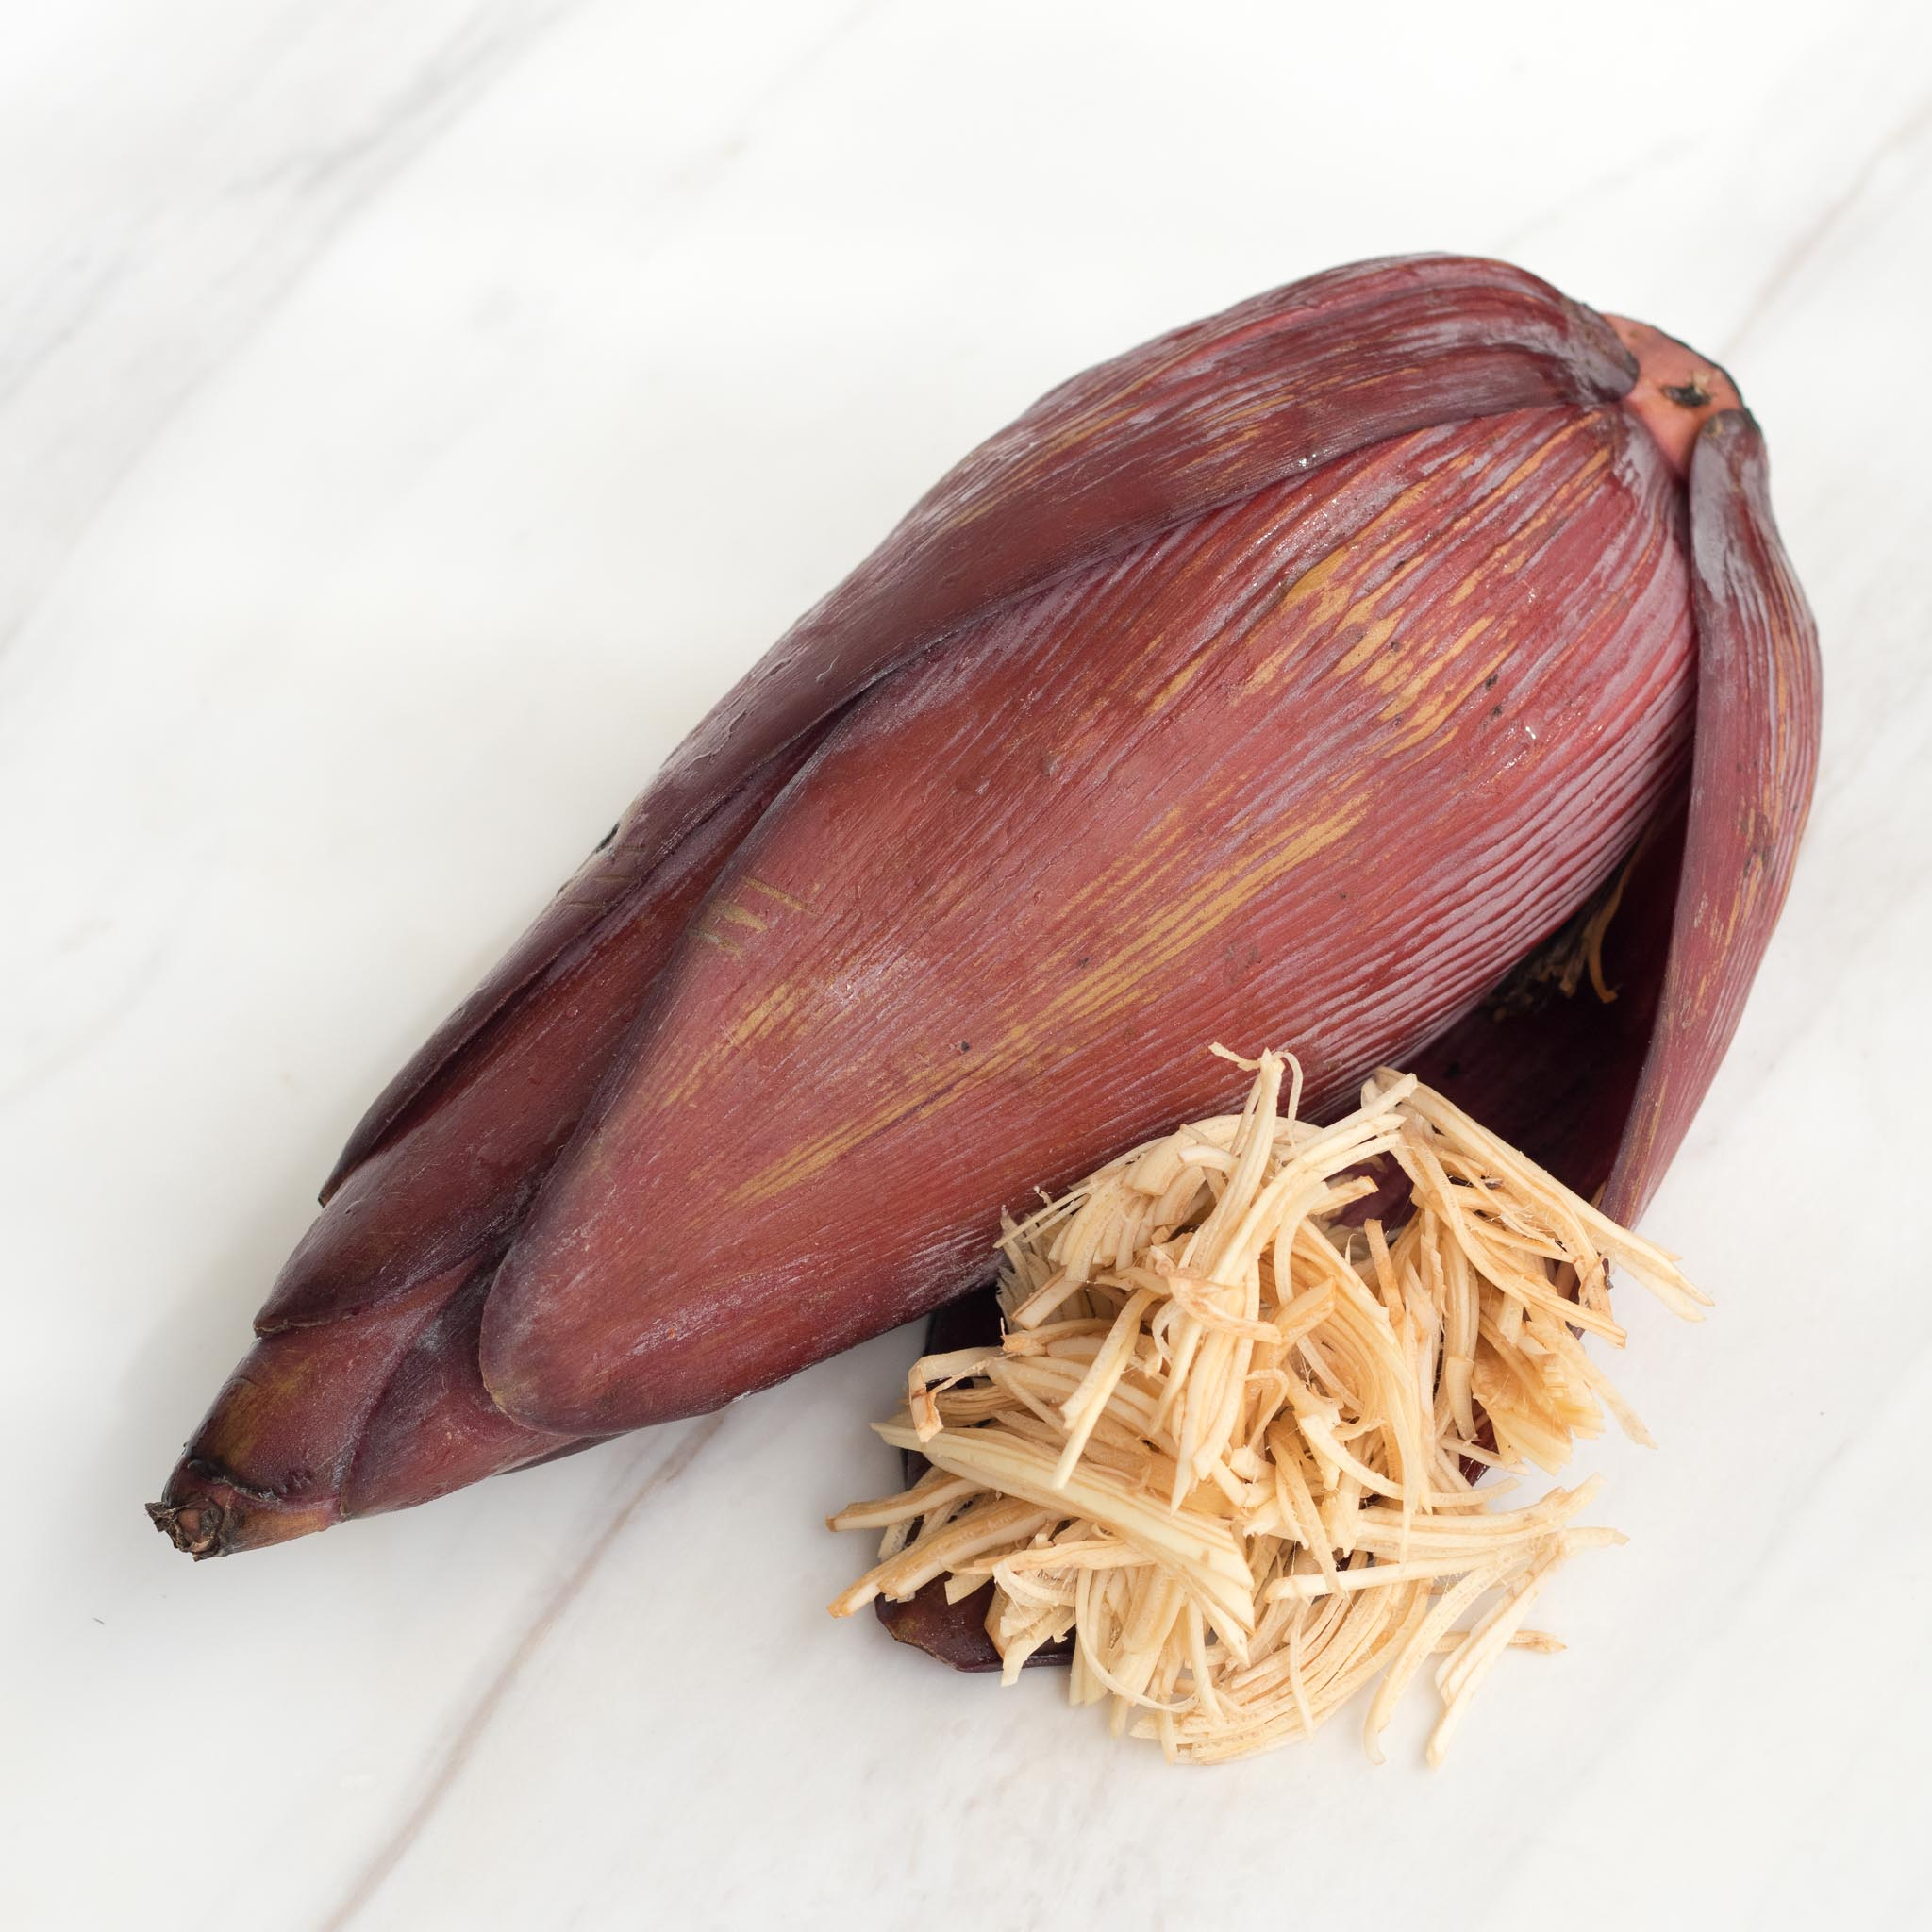 Banana Flower thinly sliced